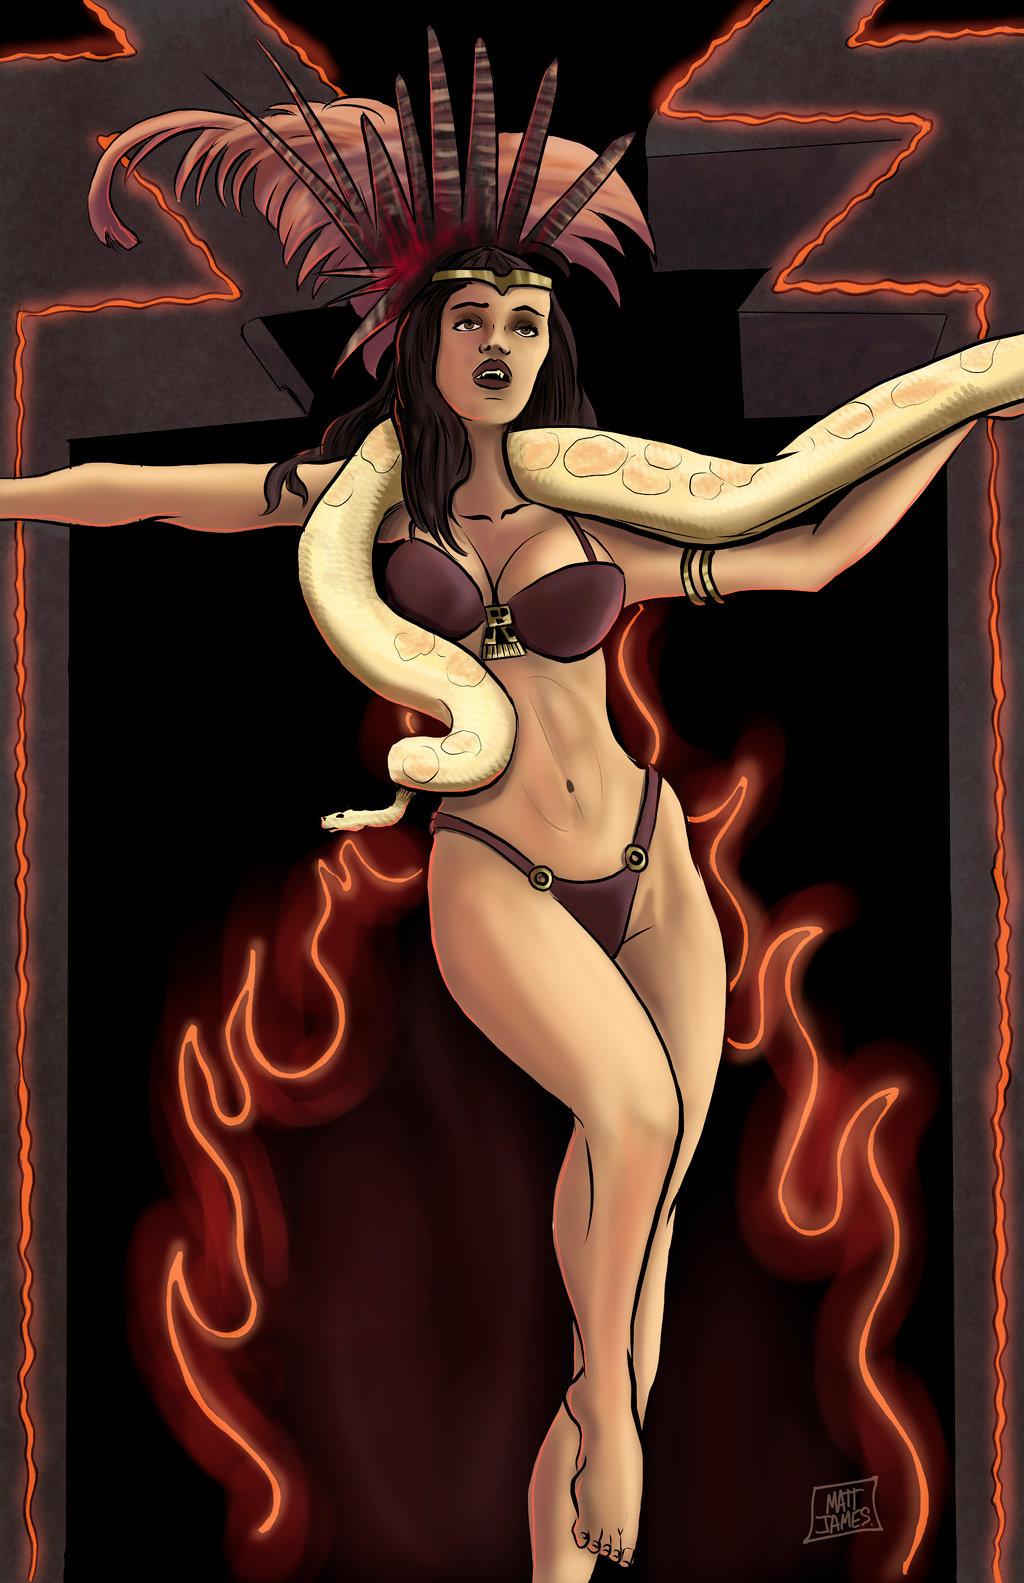 Matt james satanico pandemonium by mattjamescomicarts d9ddd7z